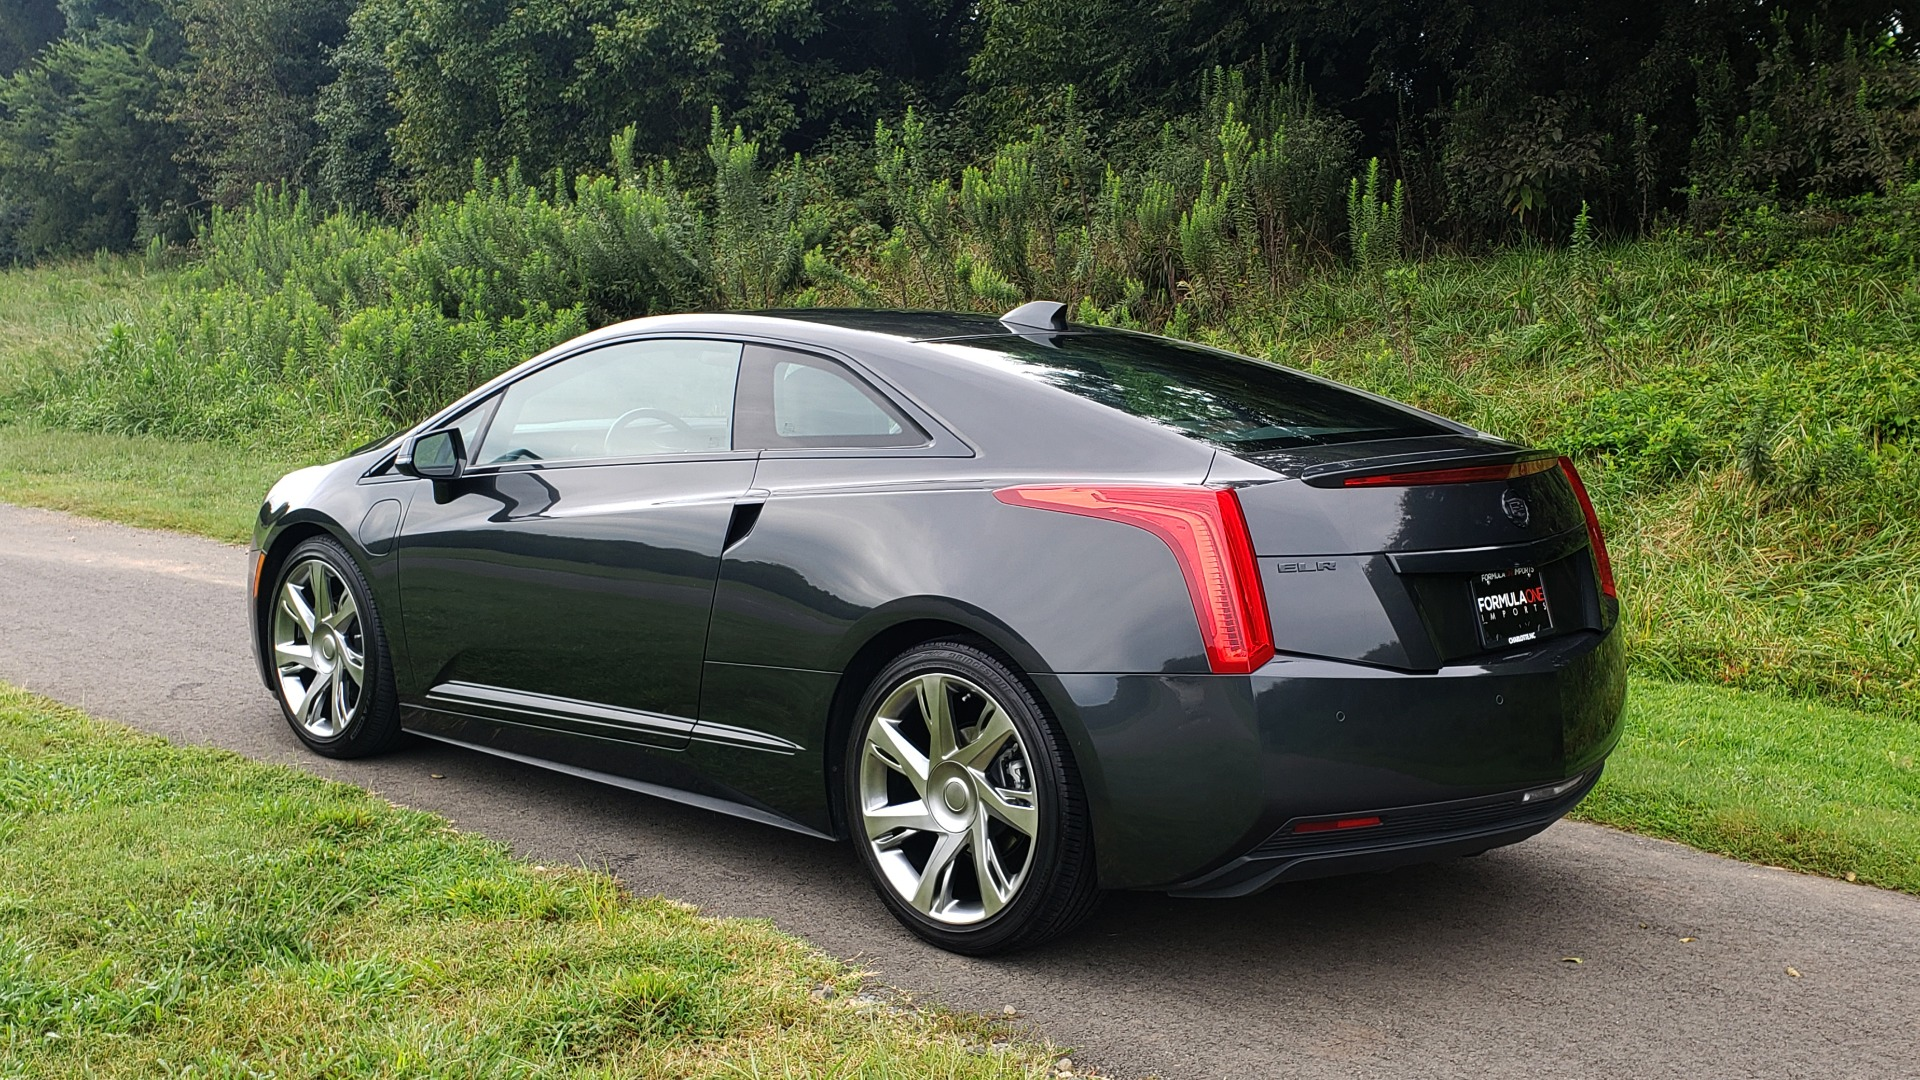 Used 2014 Cadillac ELR 2DR COUPE / HYBRID / NAV / BOSE / HEATED SEATS / REARVIEW for sale $34,000 at Formula Imports in Charlotte NC 28227 5